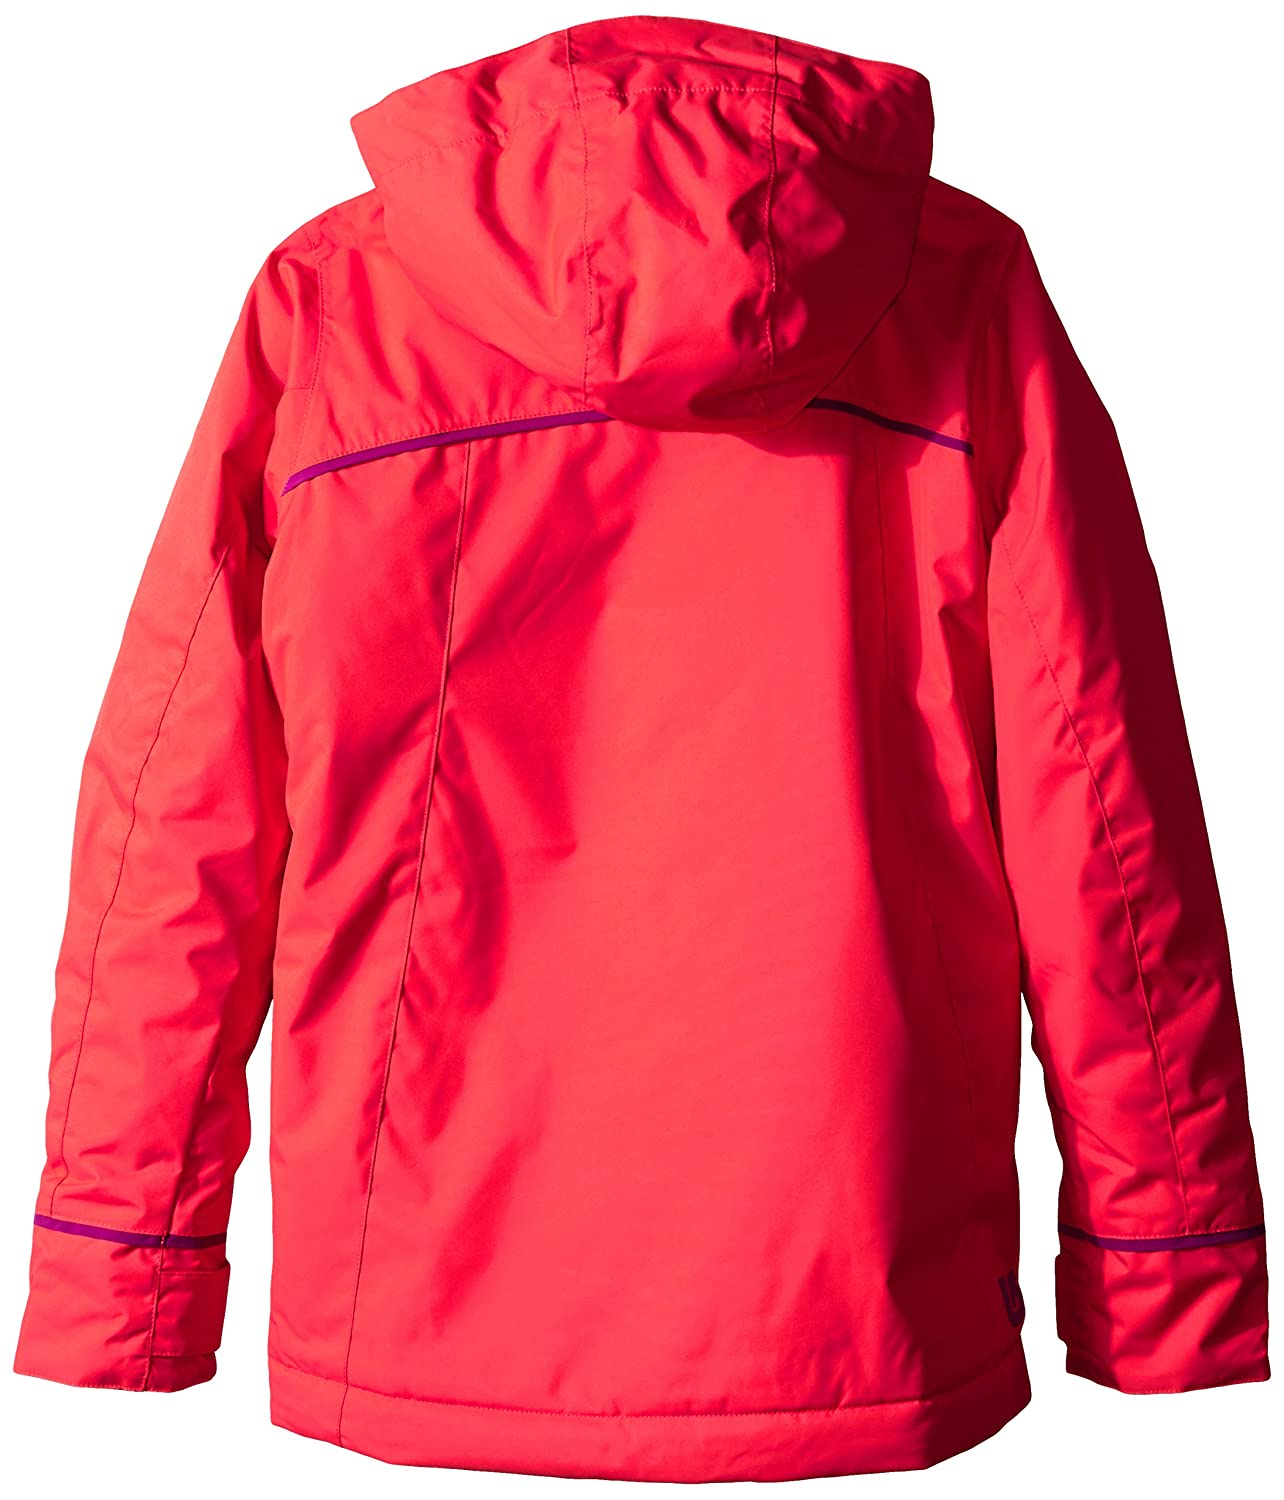 78051d691c04 Amazon.com   Burton Elodie Snowboard Jacket Girl s   Clothing